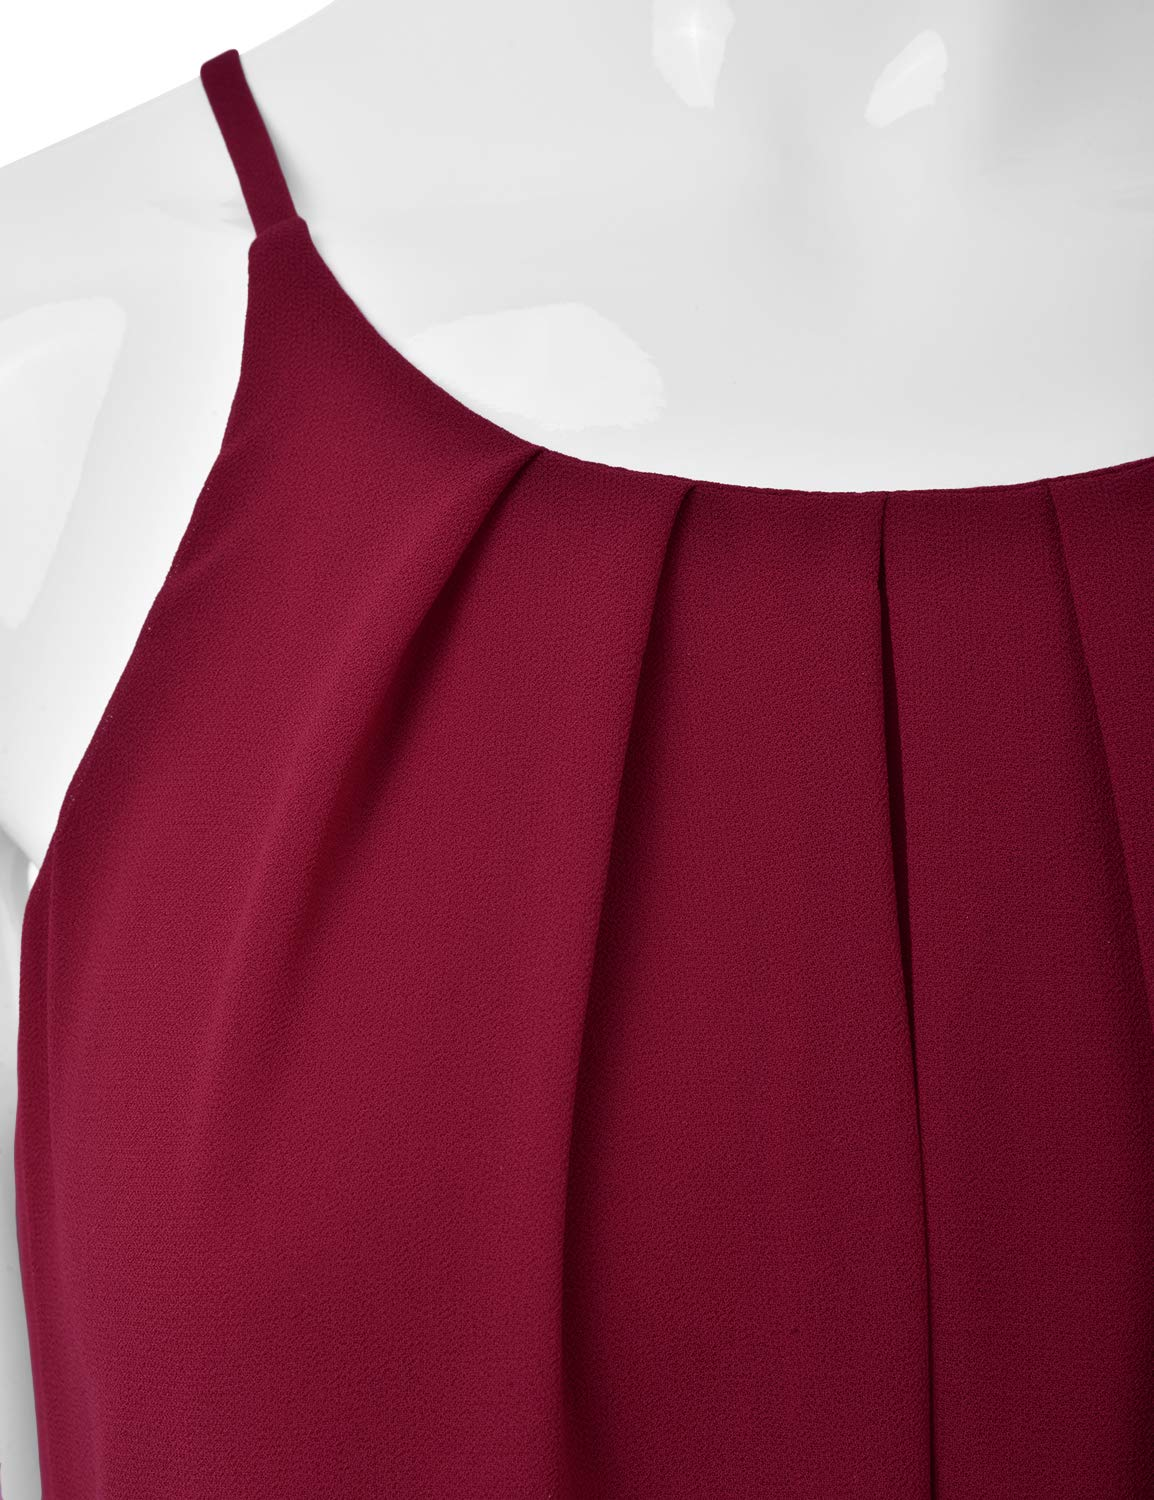 EIMIN Women's Crewneck Pleated Front Double Layered Chiffon Cami Tank Top Burgundy M by EIMIN (Image #4)